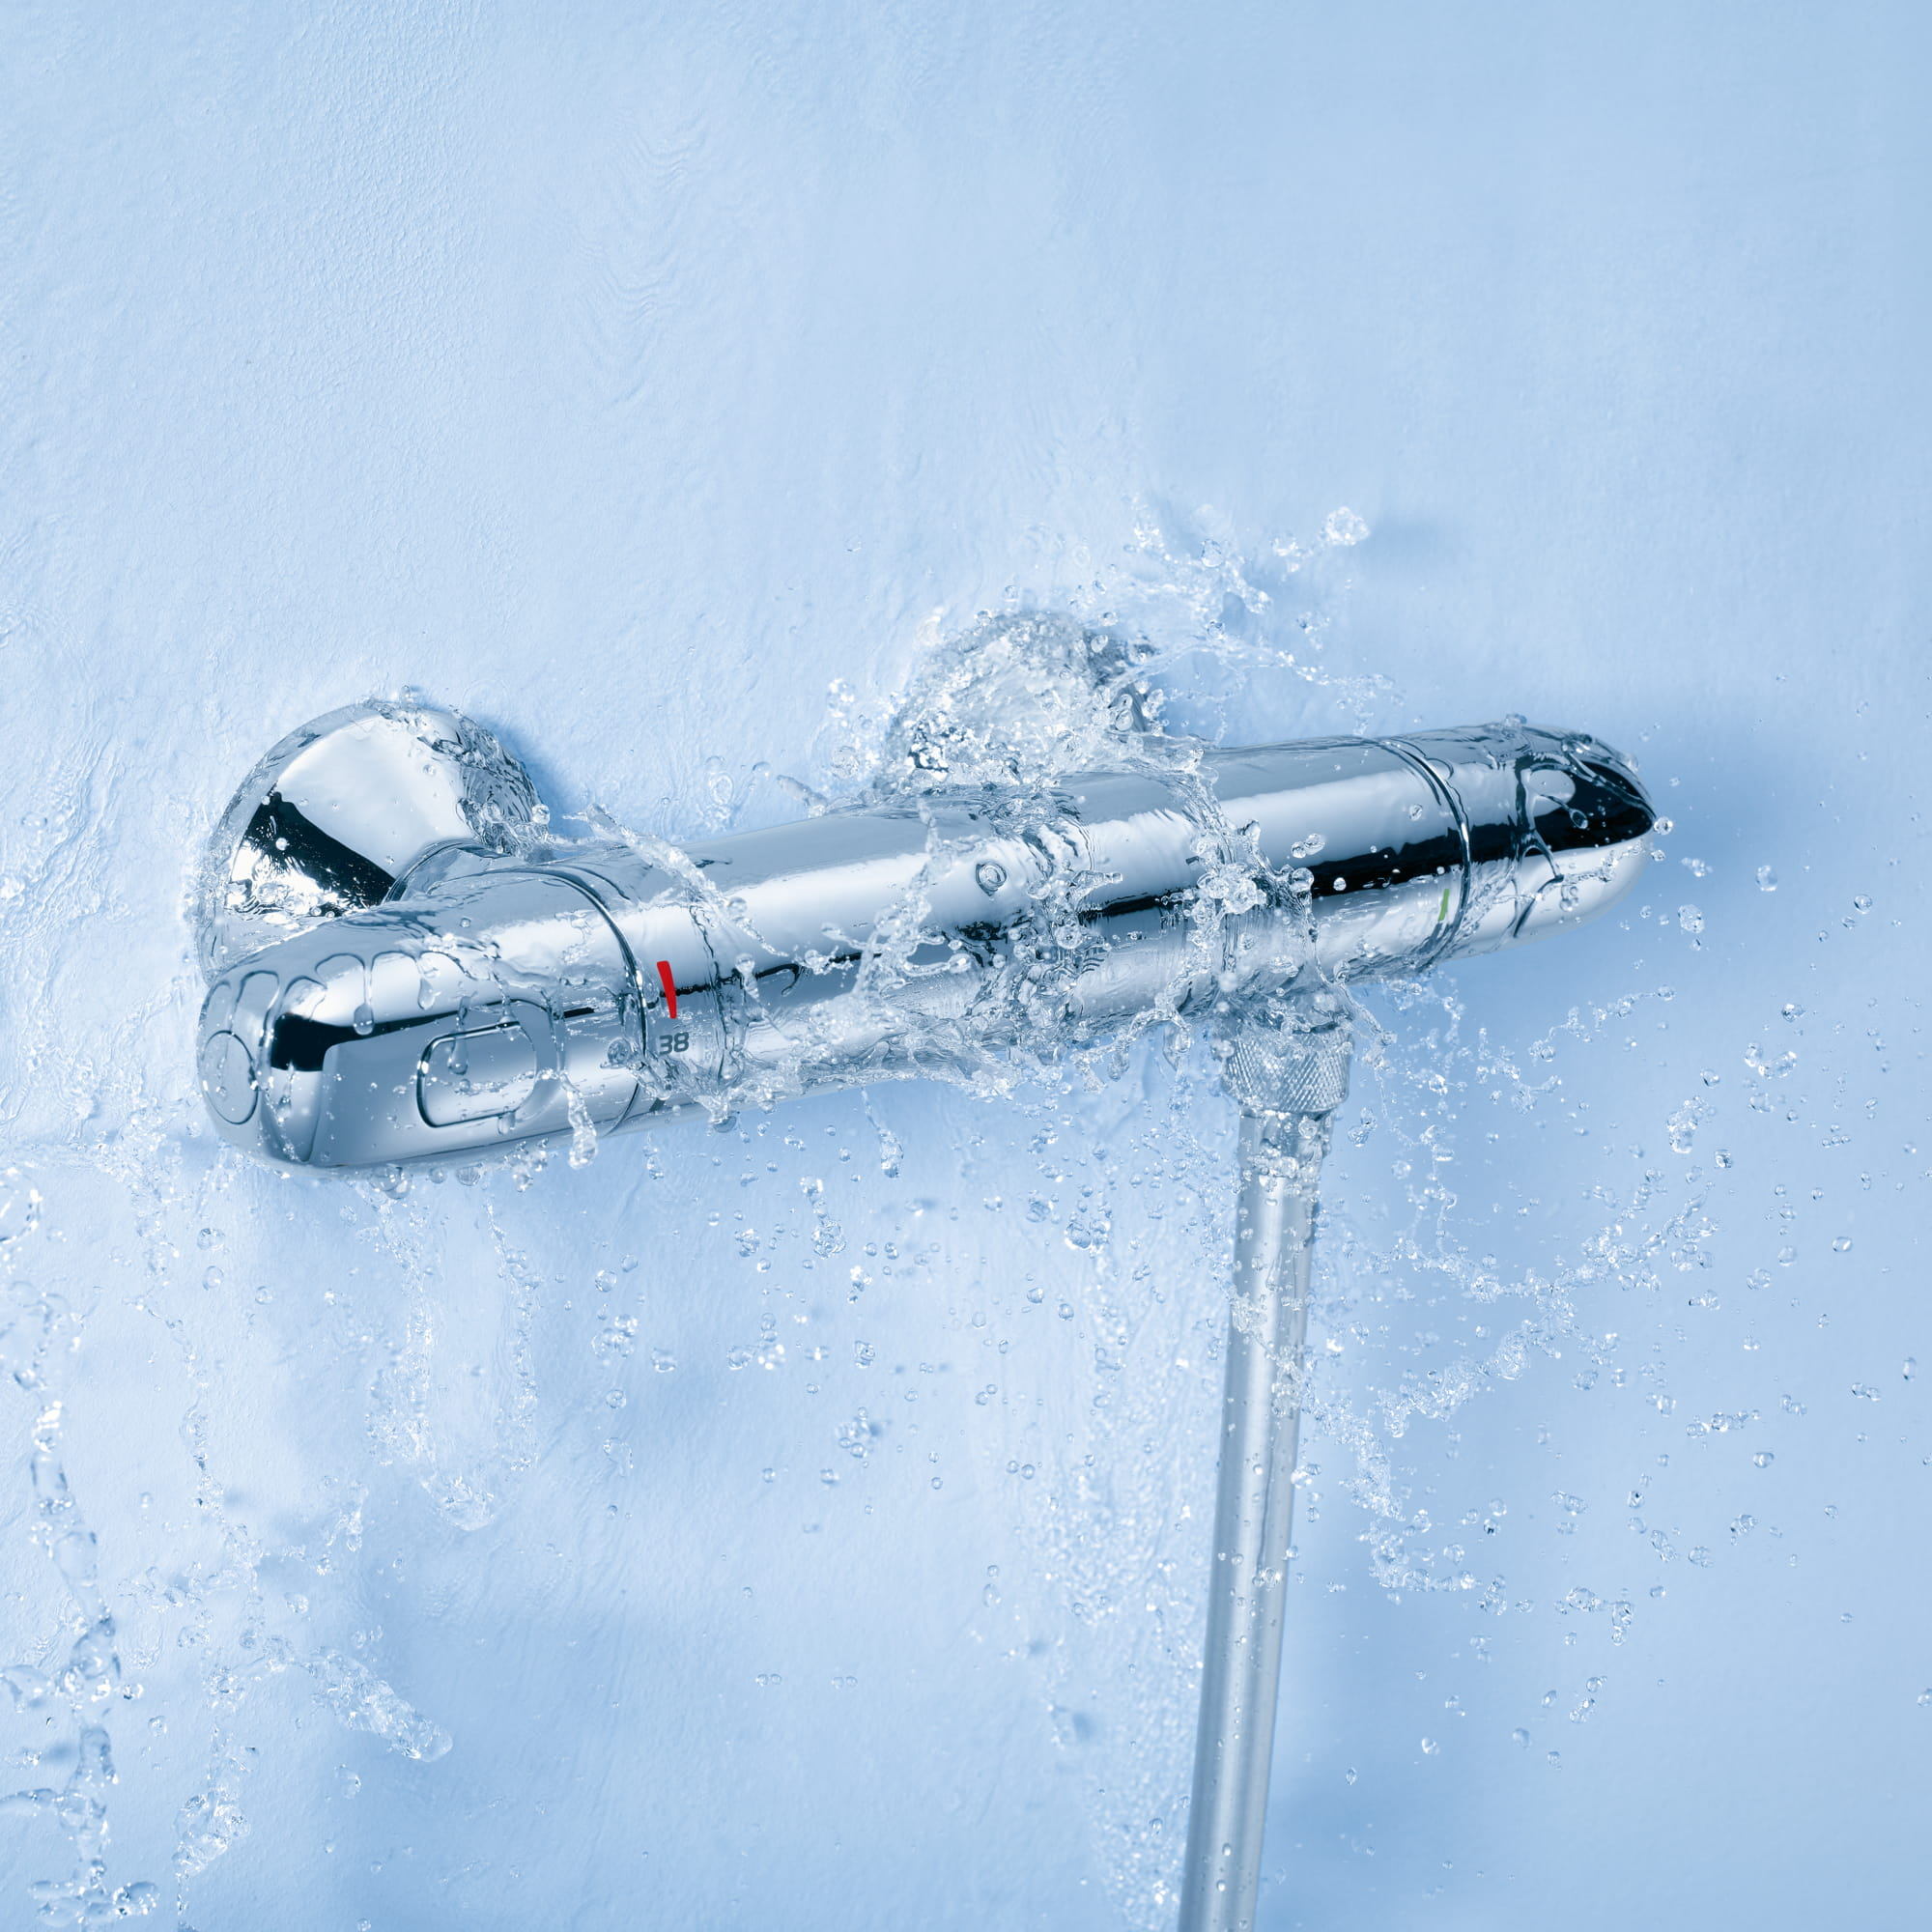 Grohtherm 1000 with water splashing